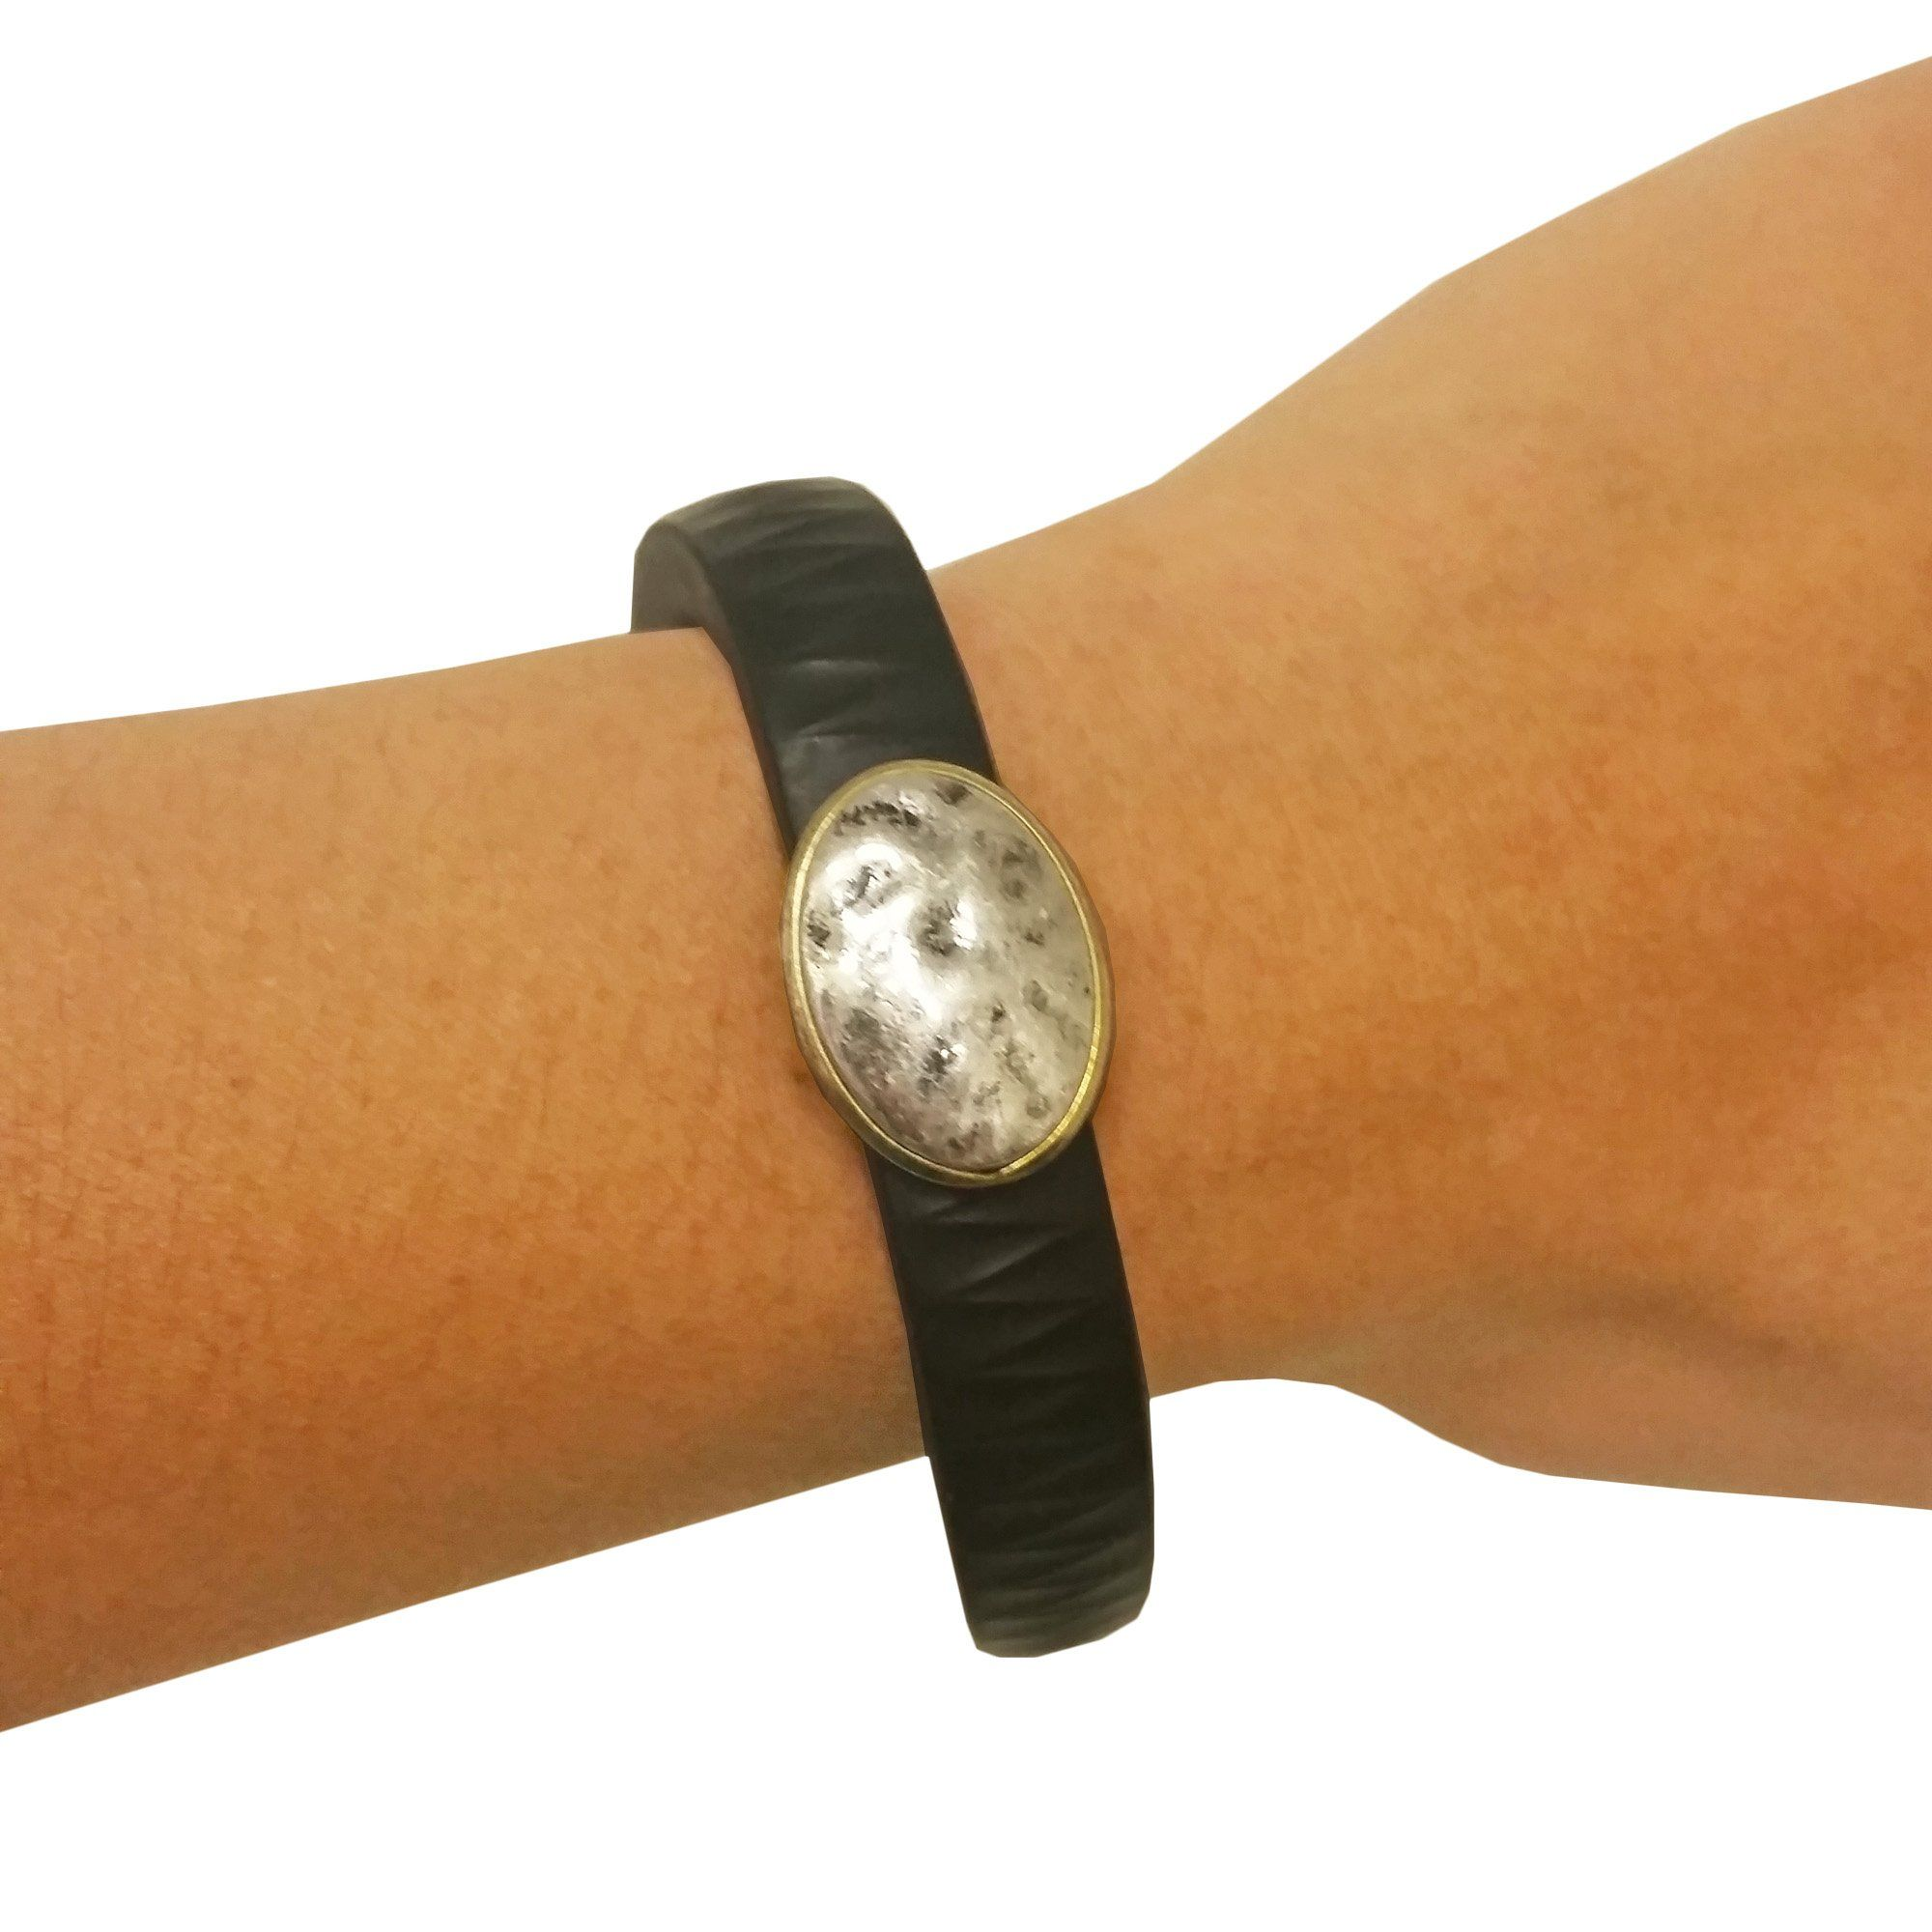 Charm to accessorize the fitbit flex and jawbone up fitness